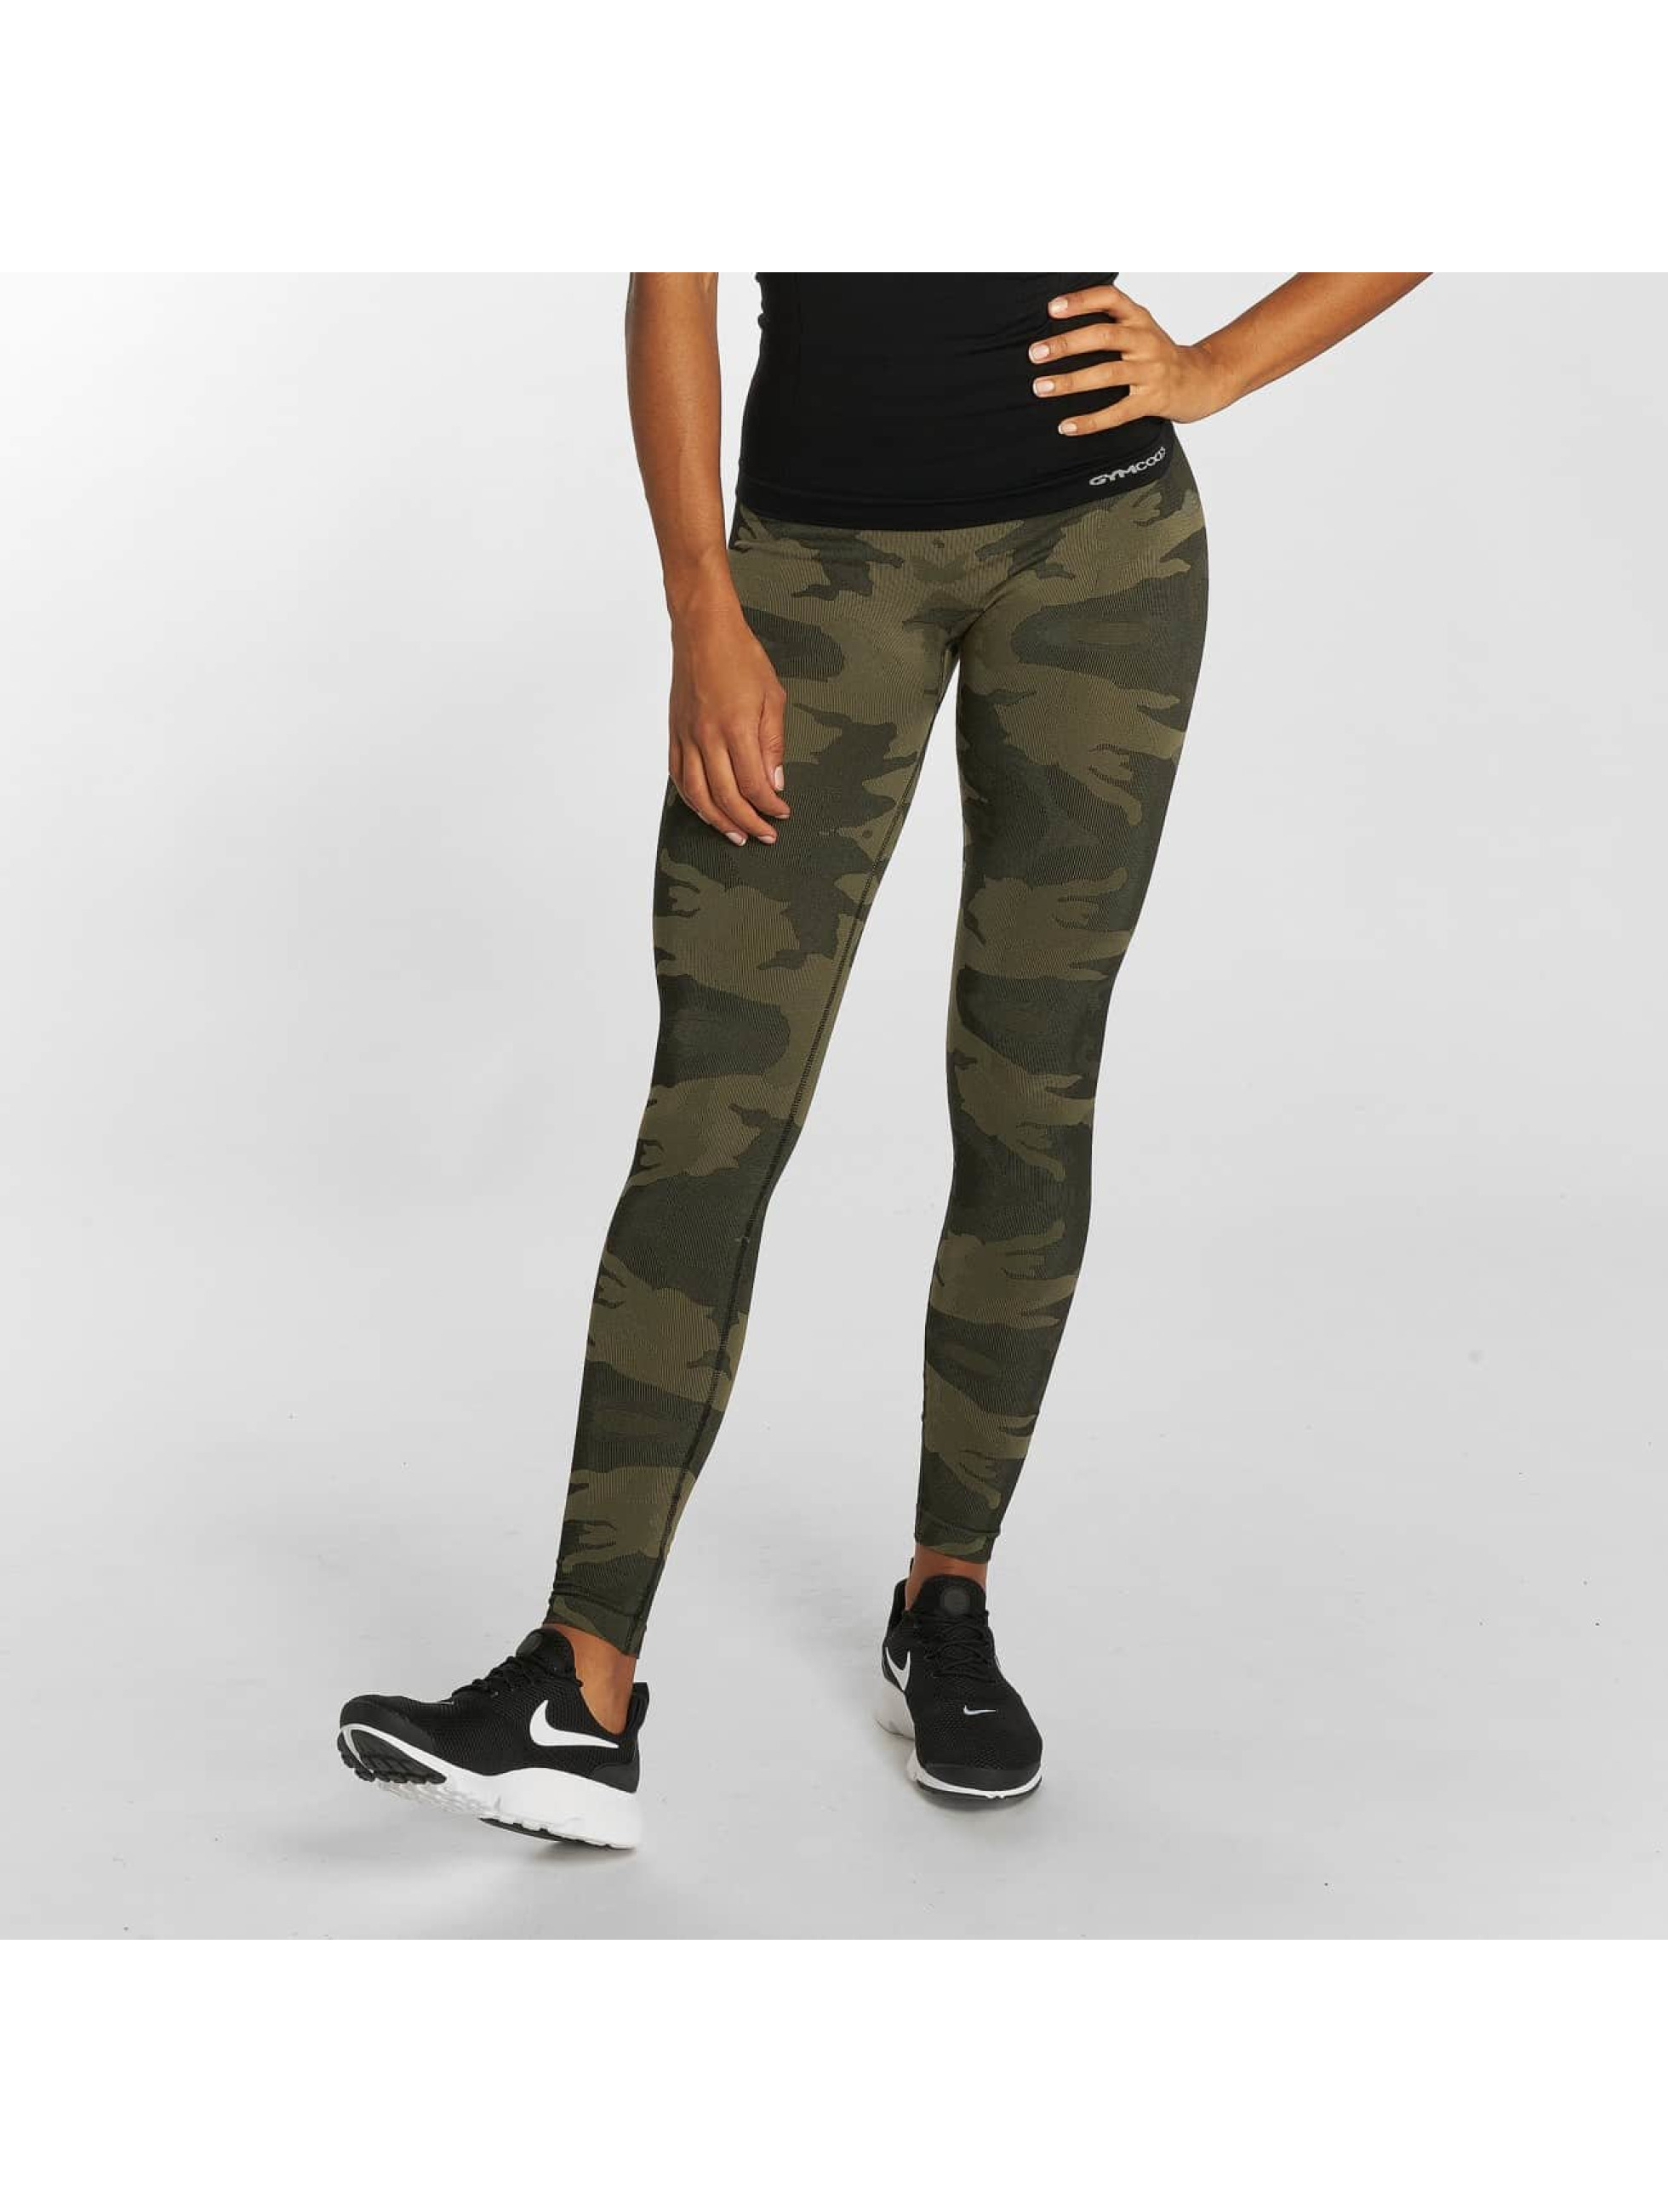 GymCodes Leggings/Treggings Flex High-Waist kamuflasje